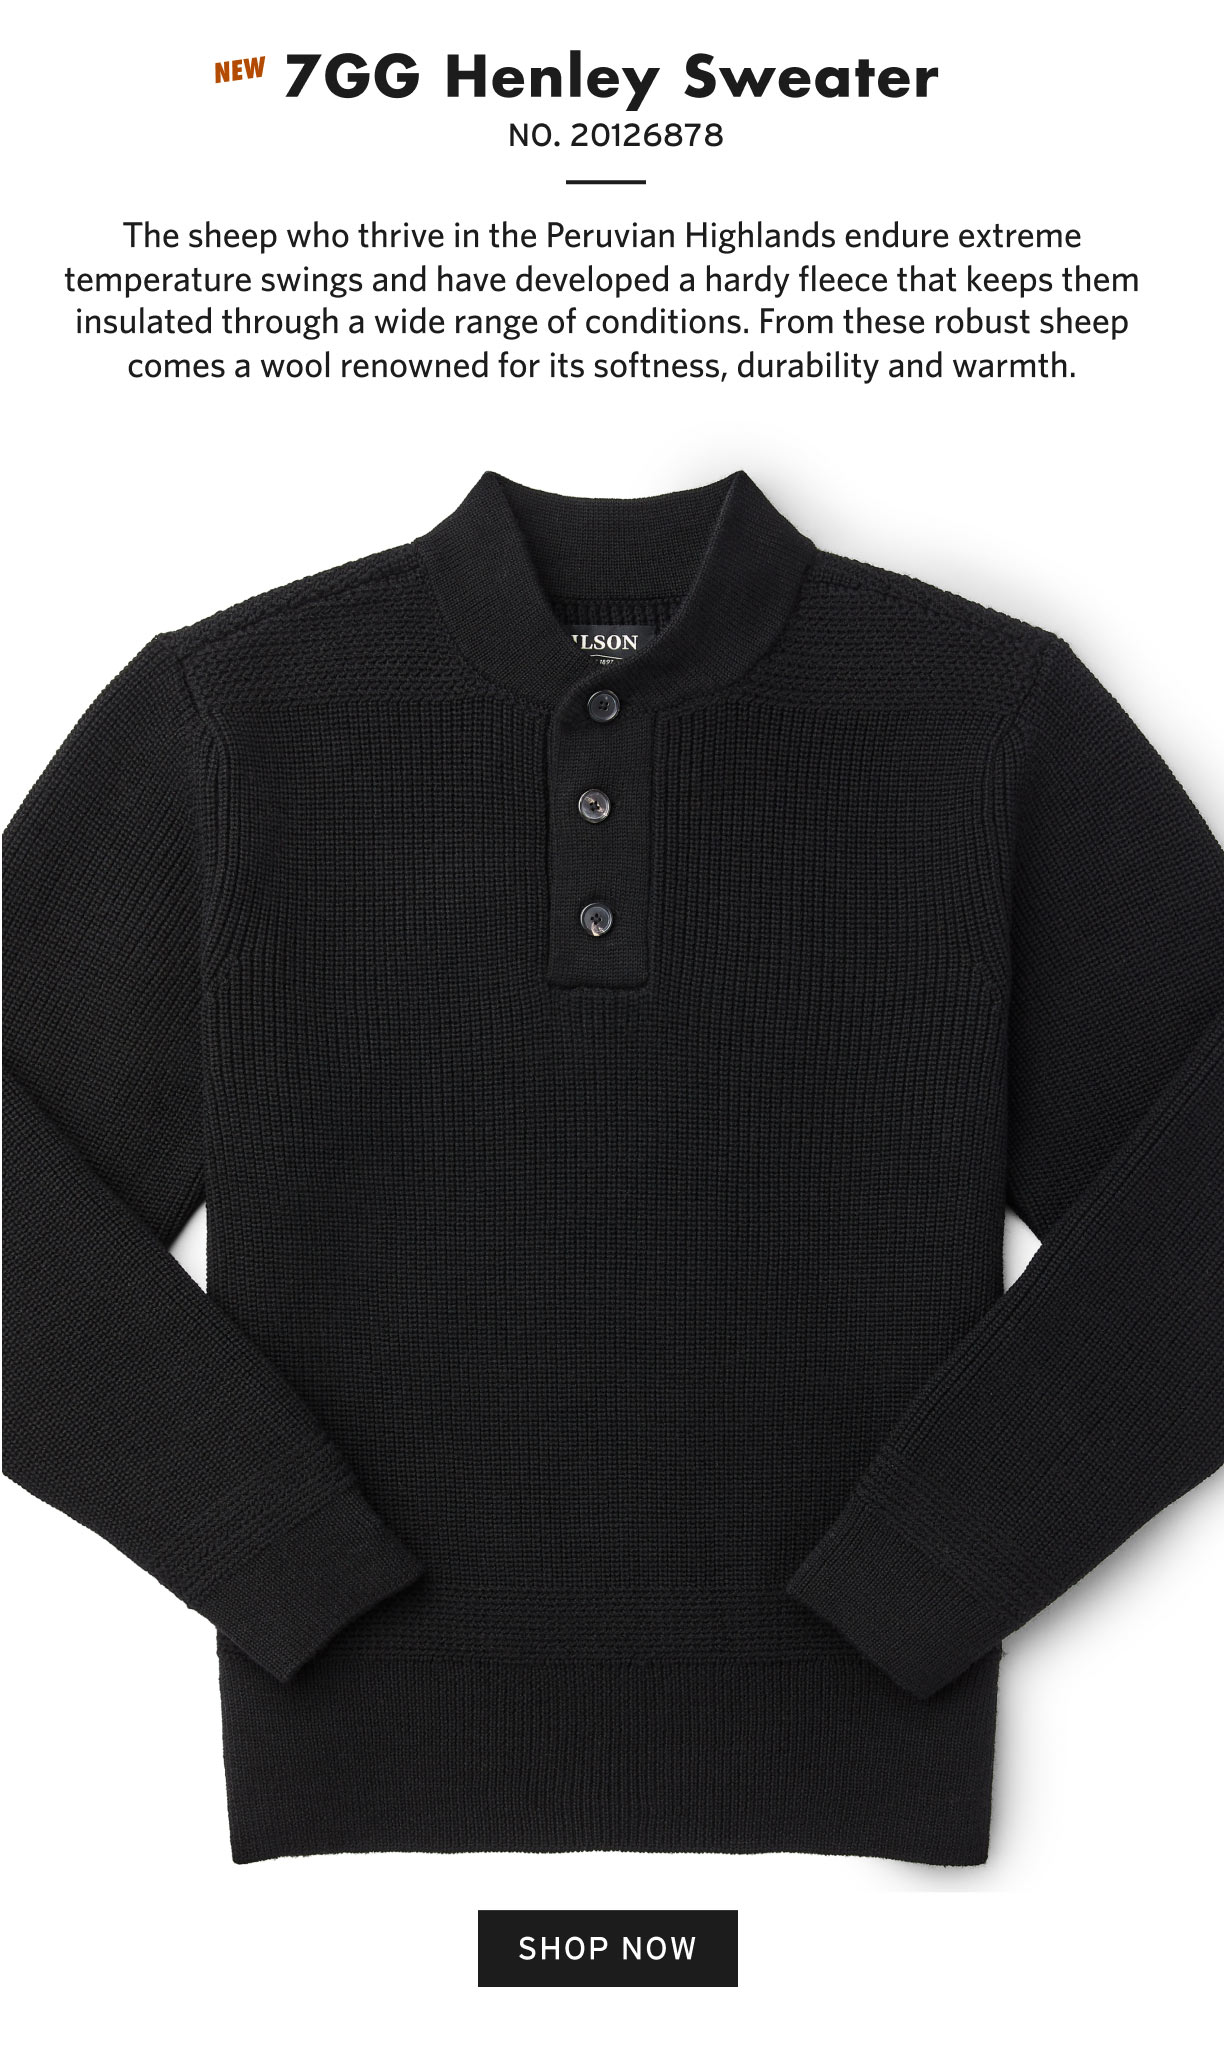 SHOP MENS SWEATERS